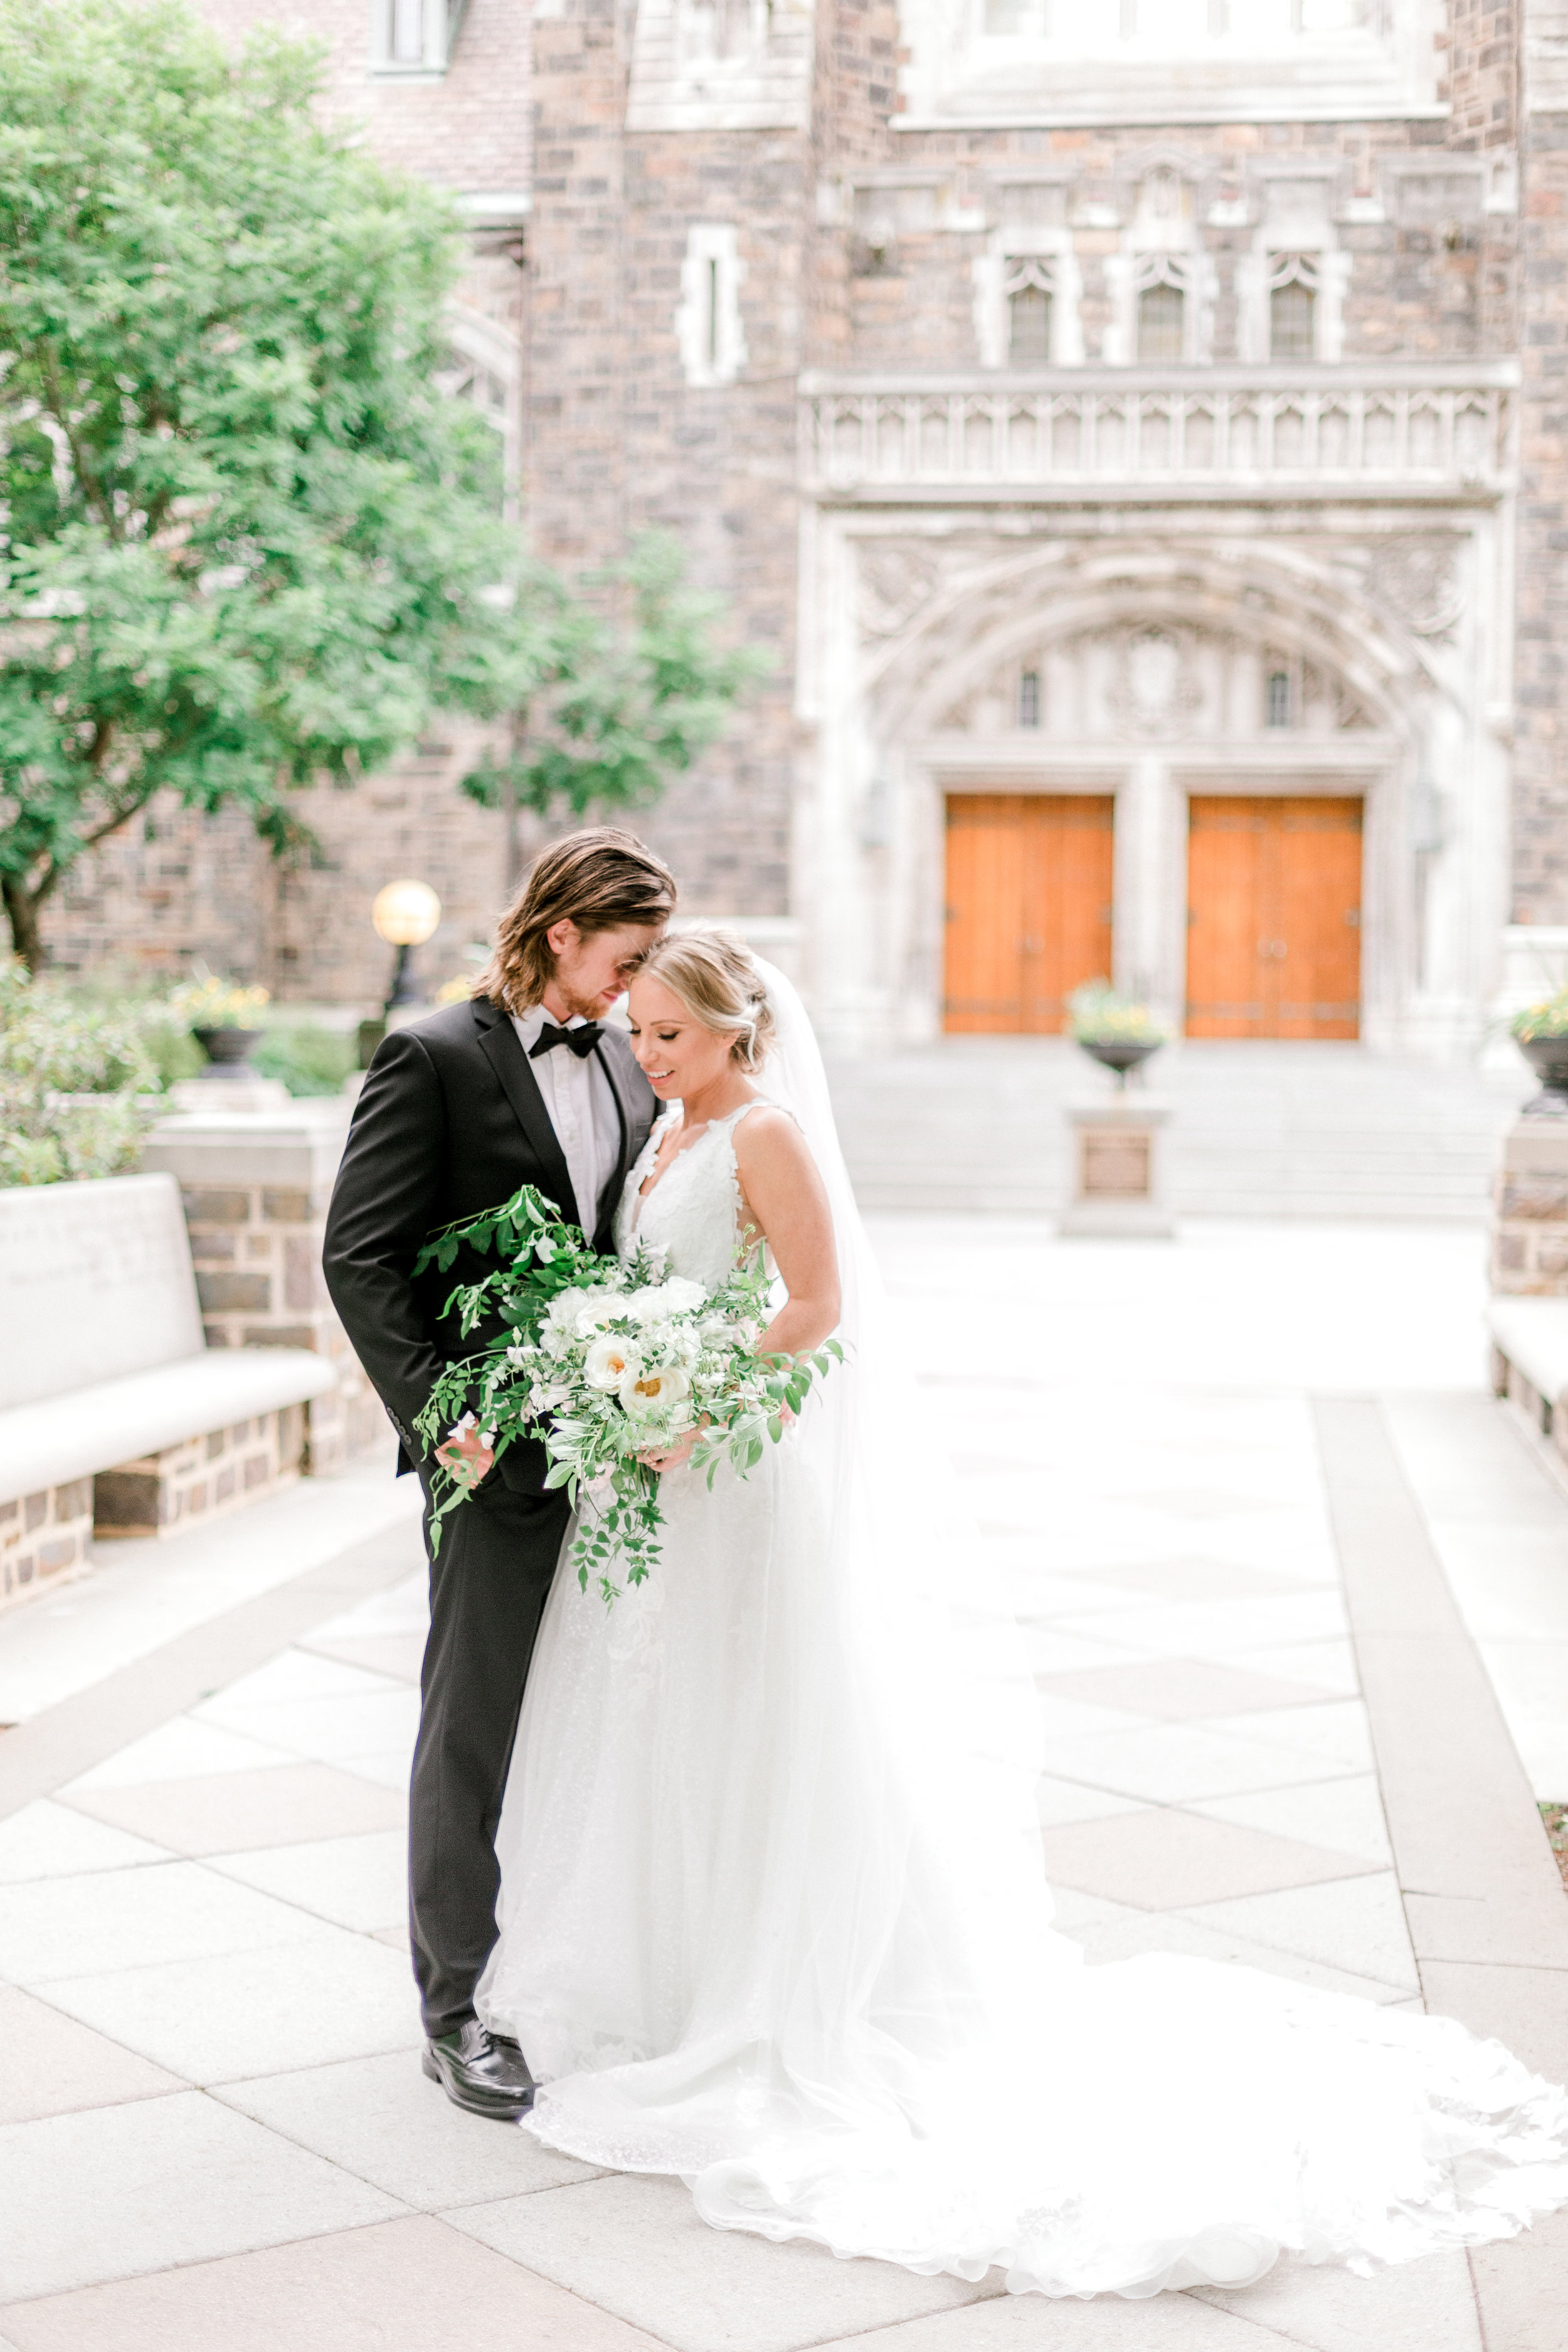 European Dream Inspired Timeless Wedding Editorial Shoot At Lehigh University Campus In Bethlehem Pennsylvania by Lehigh valley based wedding and lifestyle photographer  (157 of 224).jpg